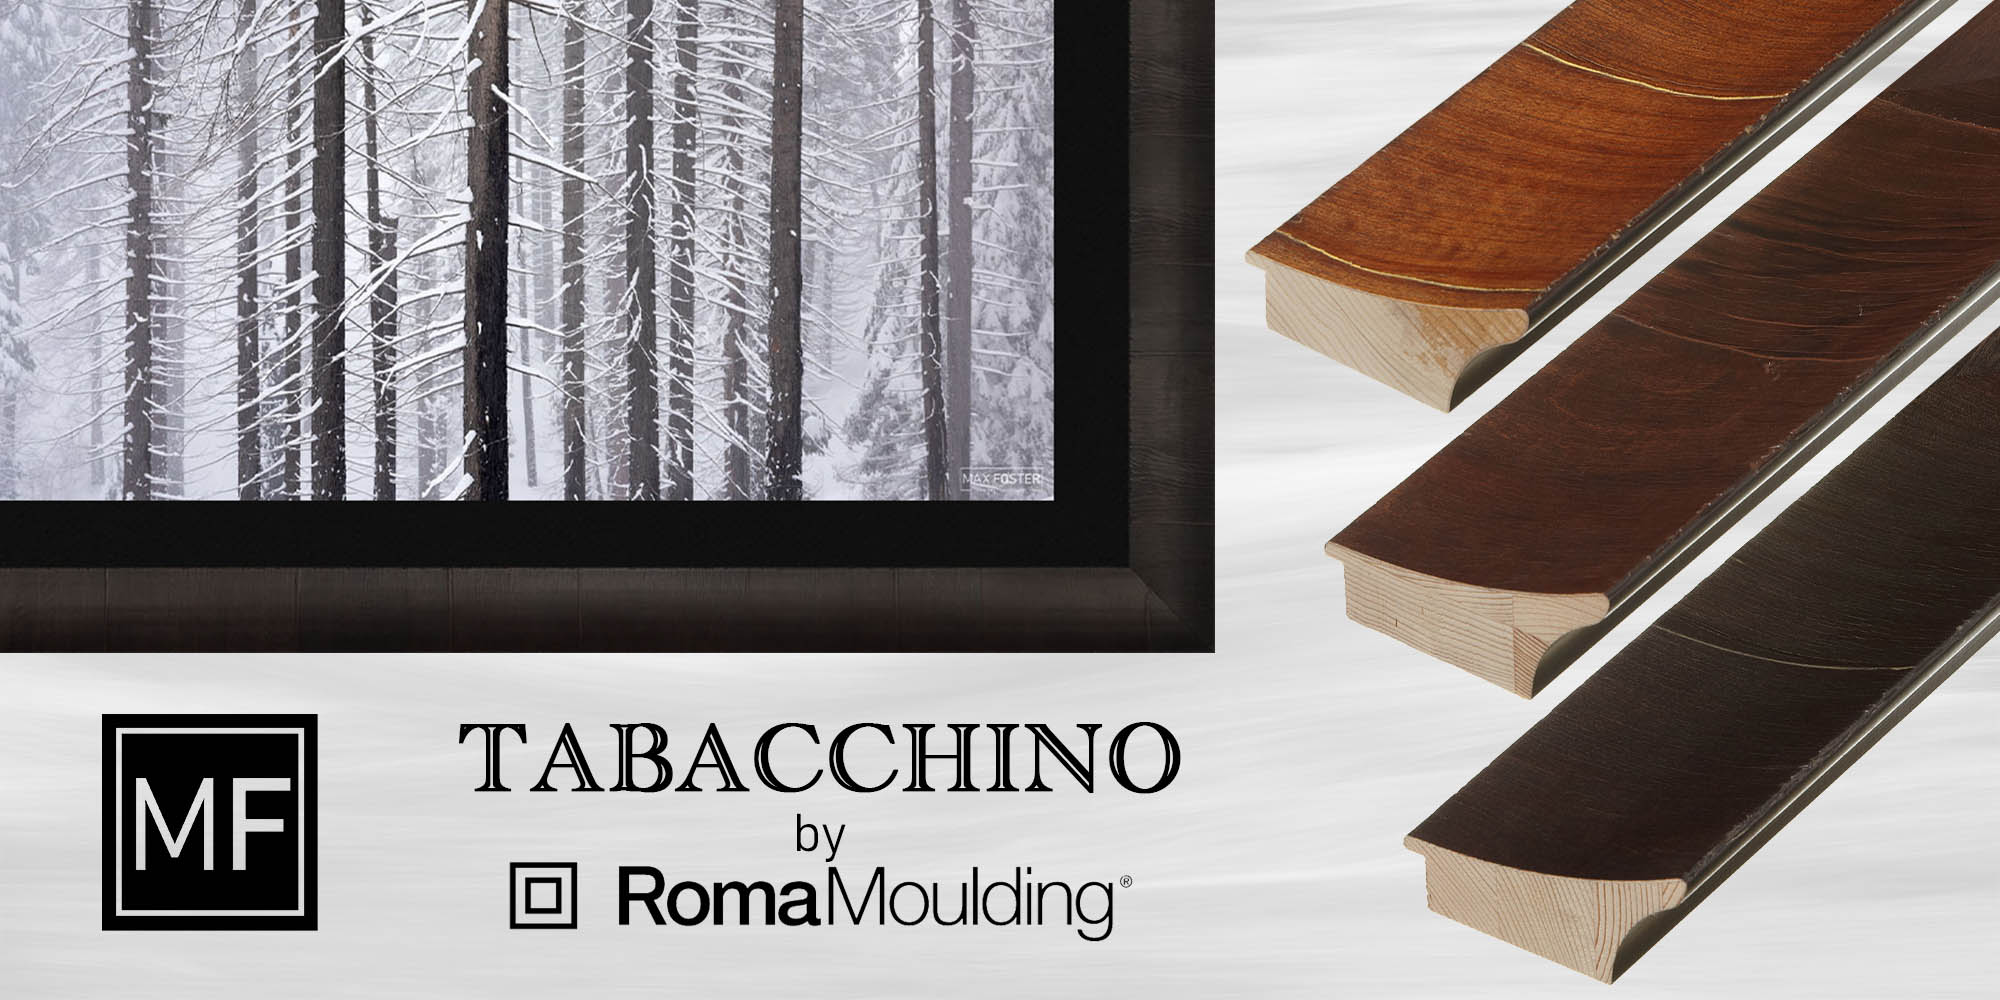 Tabacchino by Roma Moulding